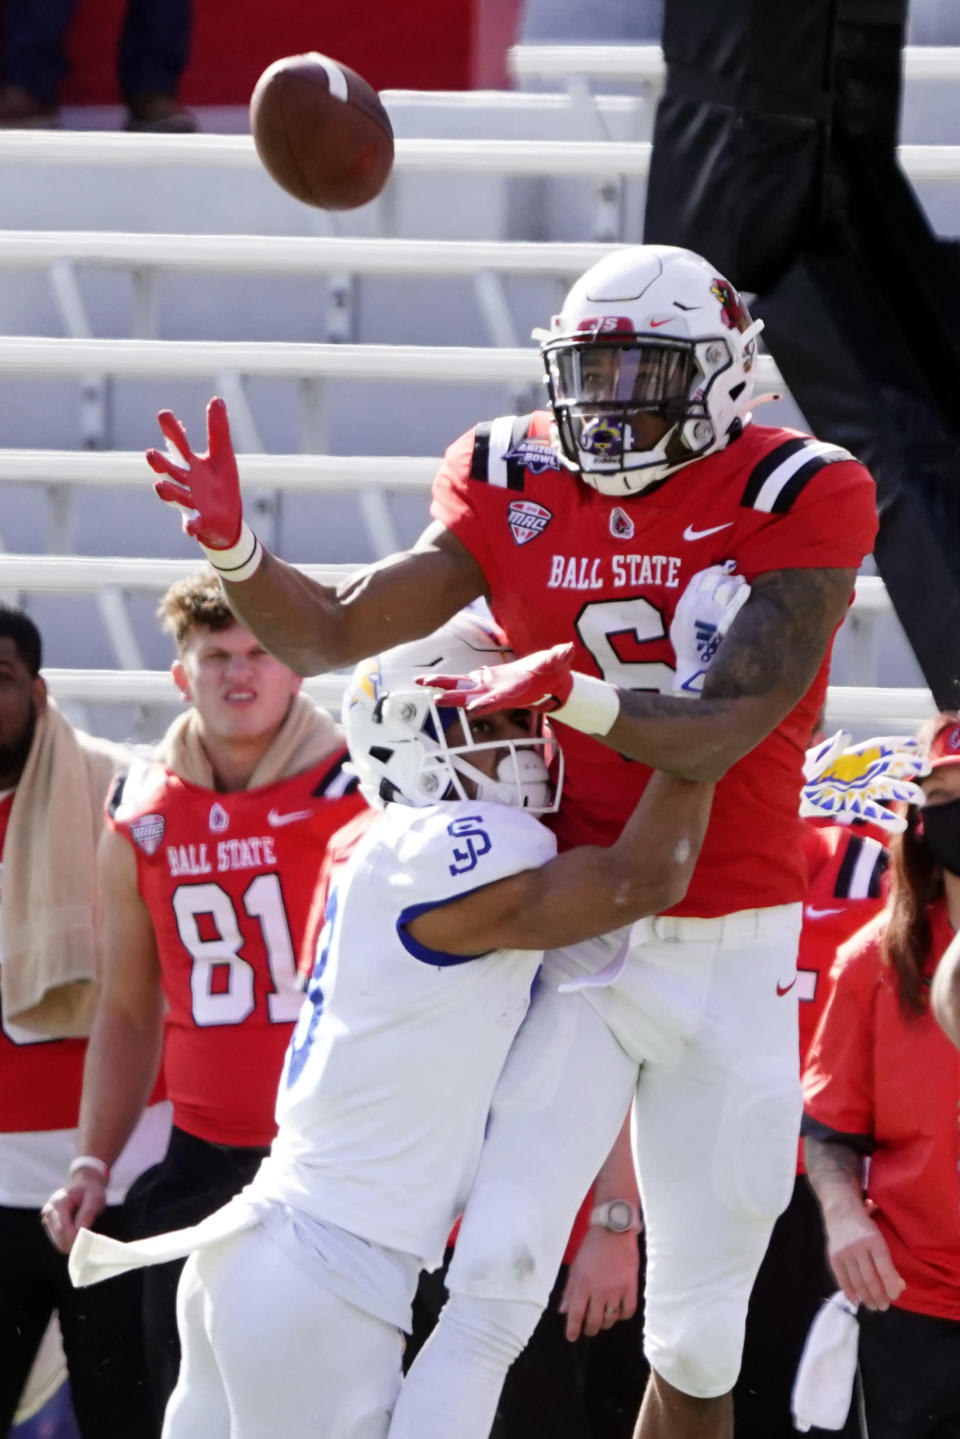 Ball State wide receiver Yo'Heinz Tyler (6) makes a catch in front of San Jose State linebacker Alii Matauin the first half of the Arizona Bowl NCAA college football game, Thursday, Dec. 31, 2020, in Tucson, Ariz. (AP Photo/Rick Scuteri)